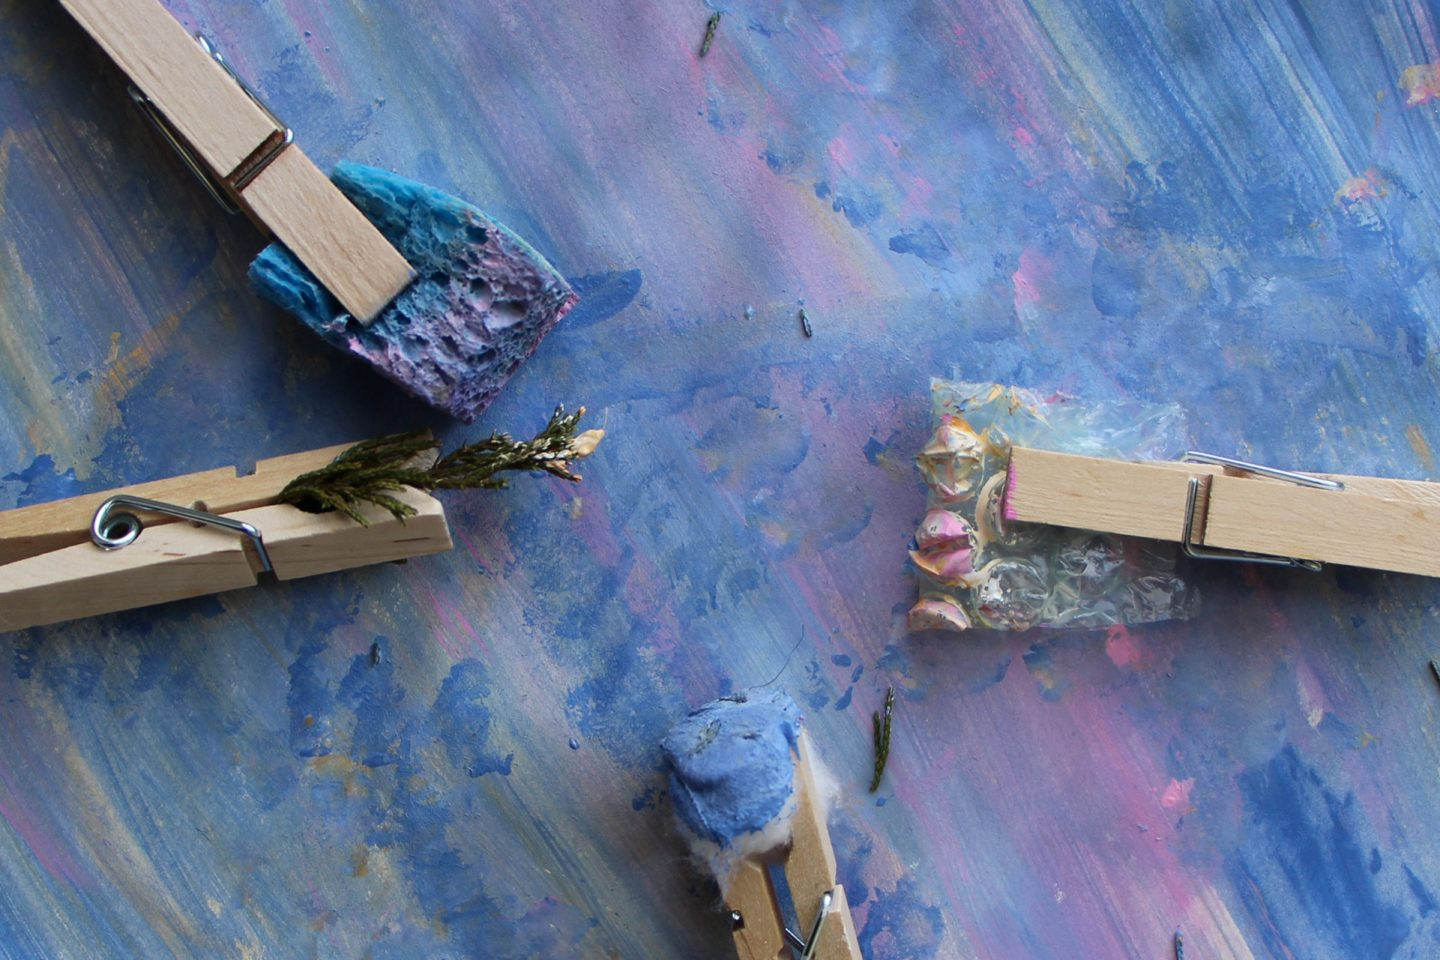 DIY paintbrushes are a great kid's art activity